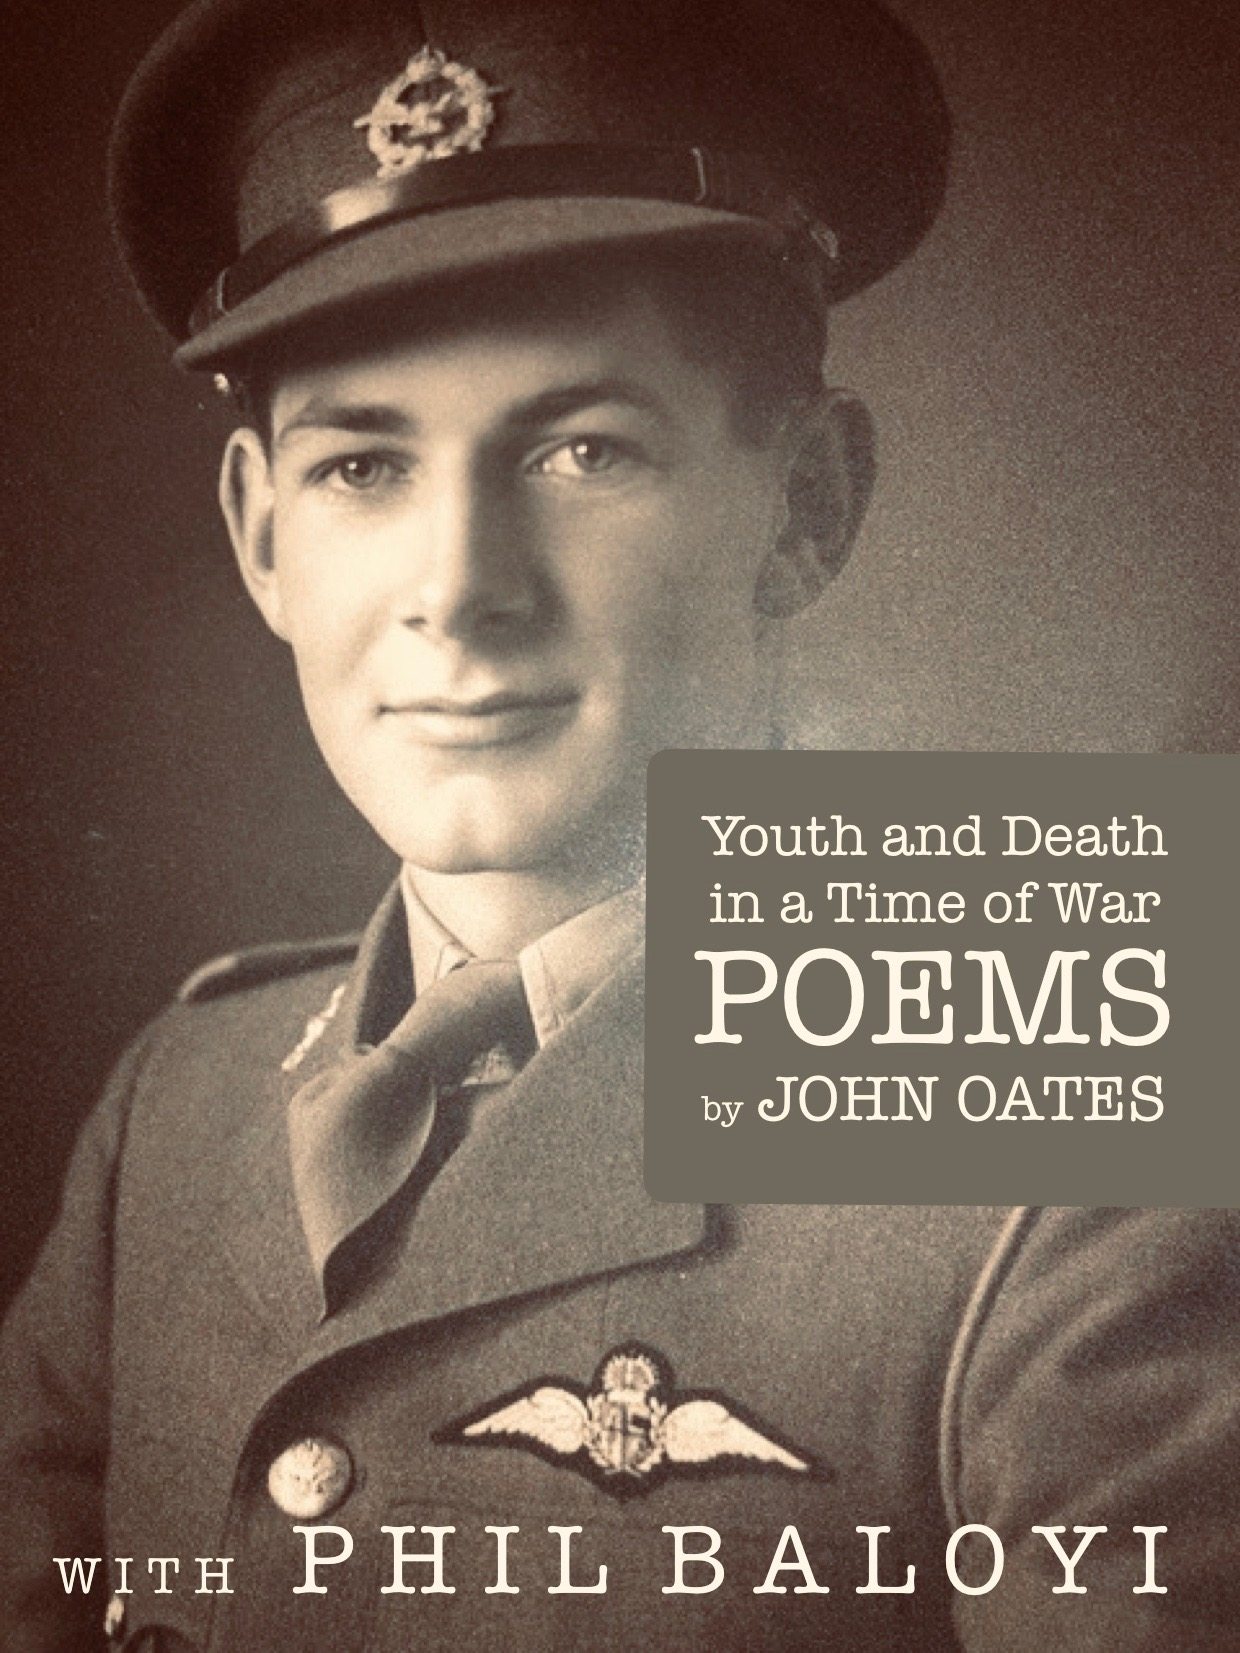 Youth and Death in a Time of War – Poems by John Oates